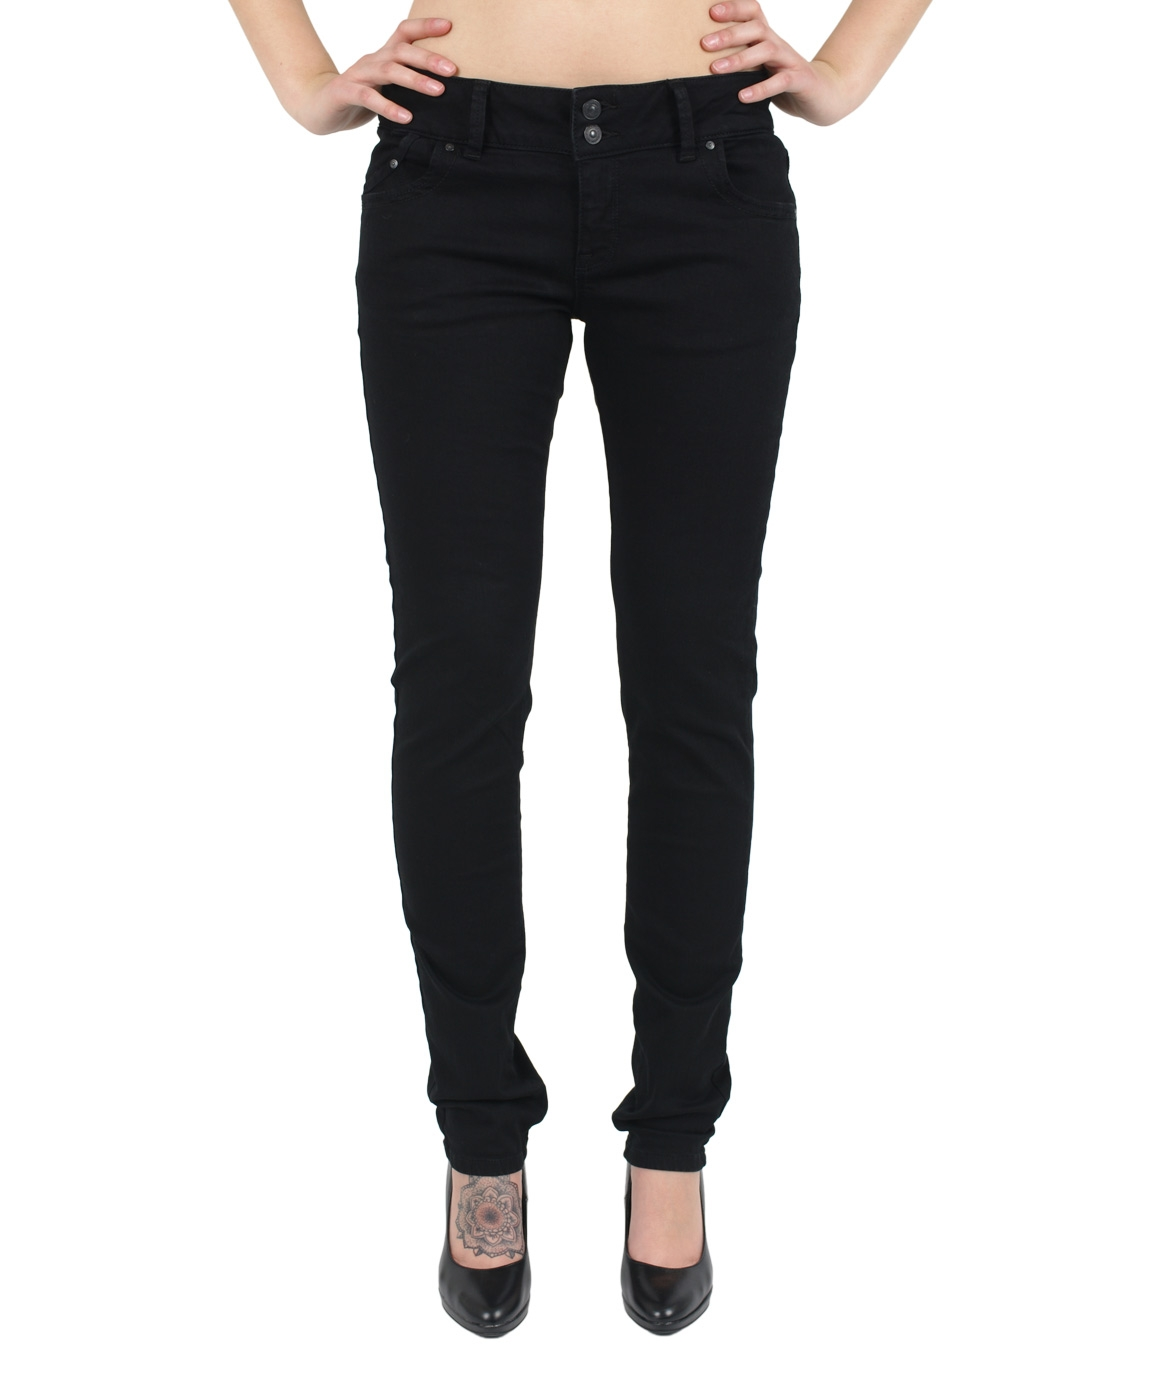 Hosen - LTB Jeans Röhre Molly in Black To Black  - Onlineshop Jeans Meile